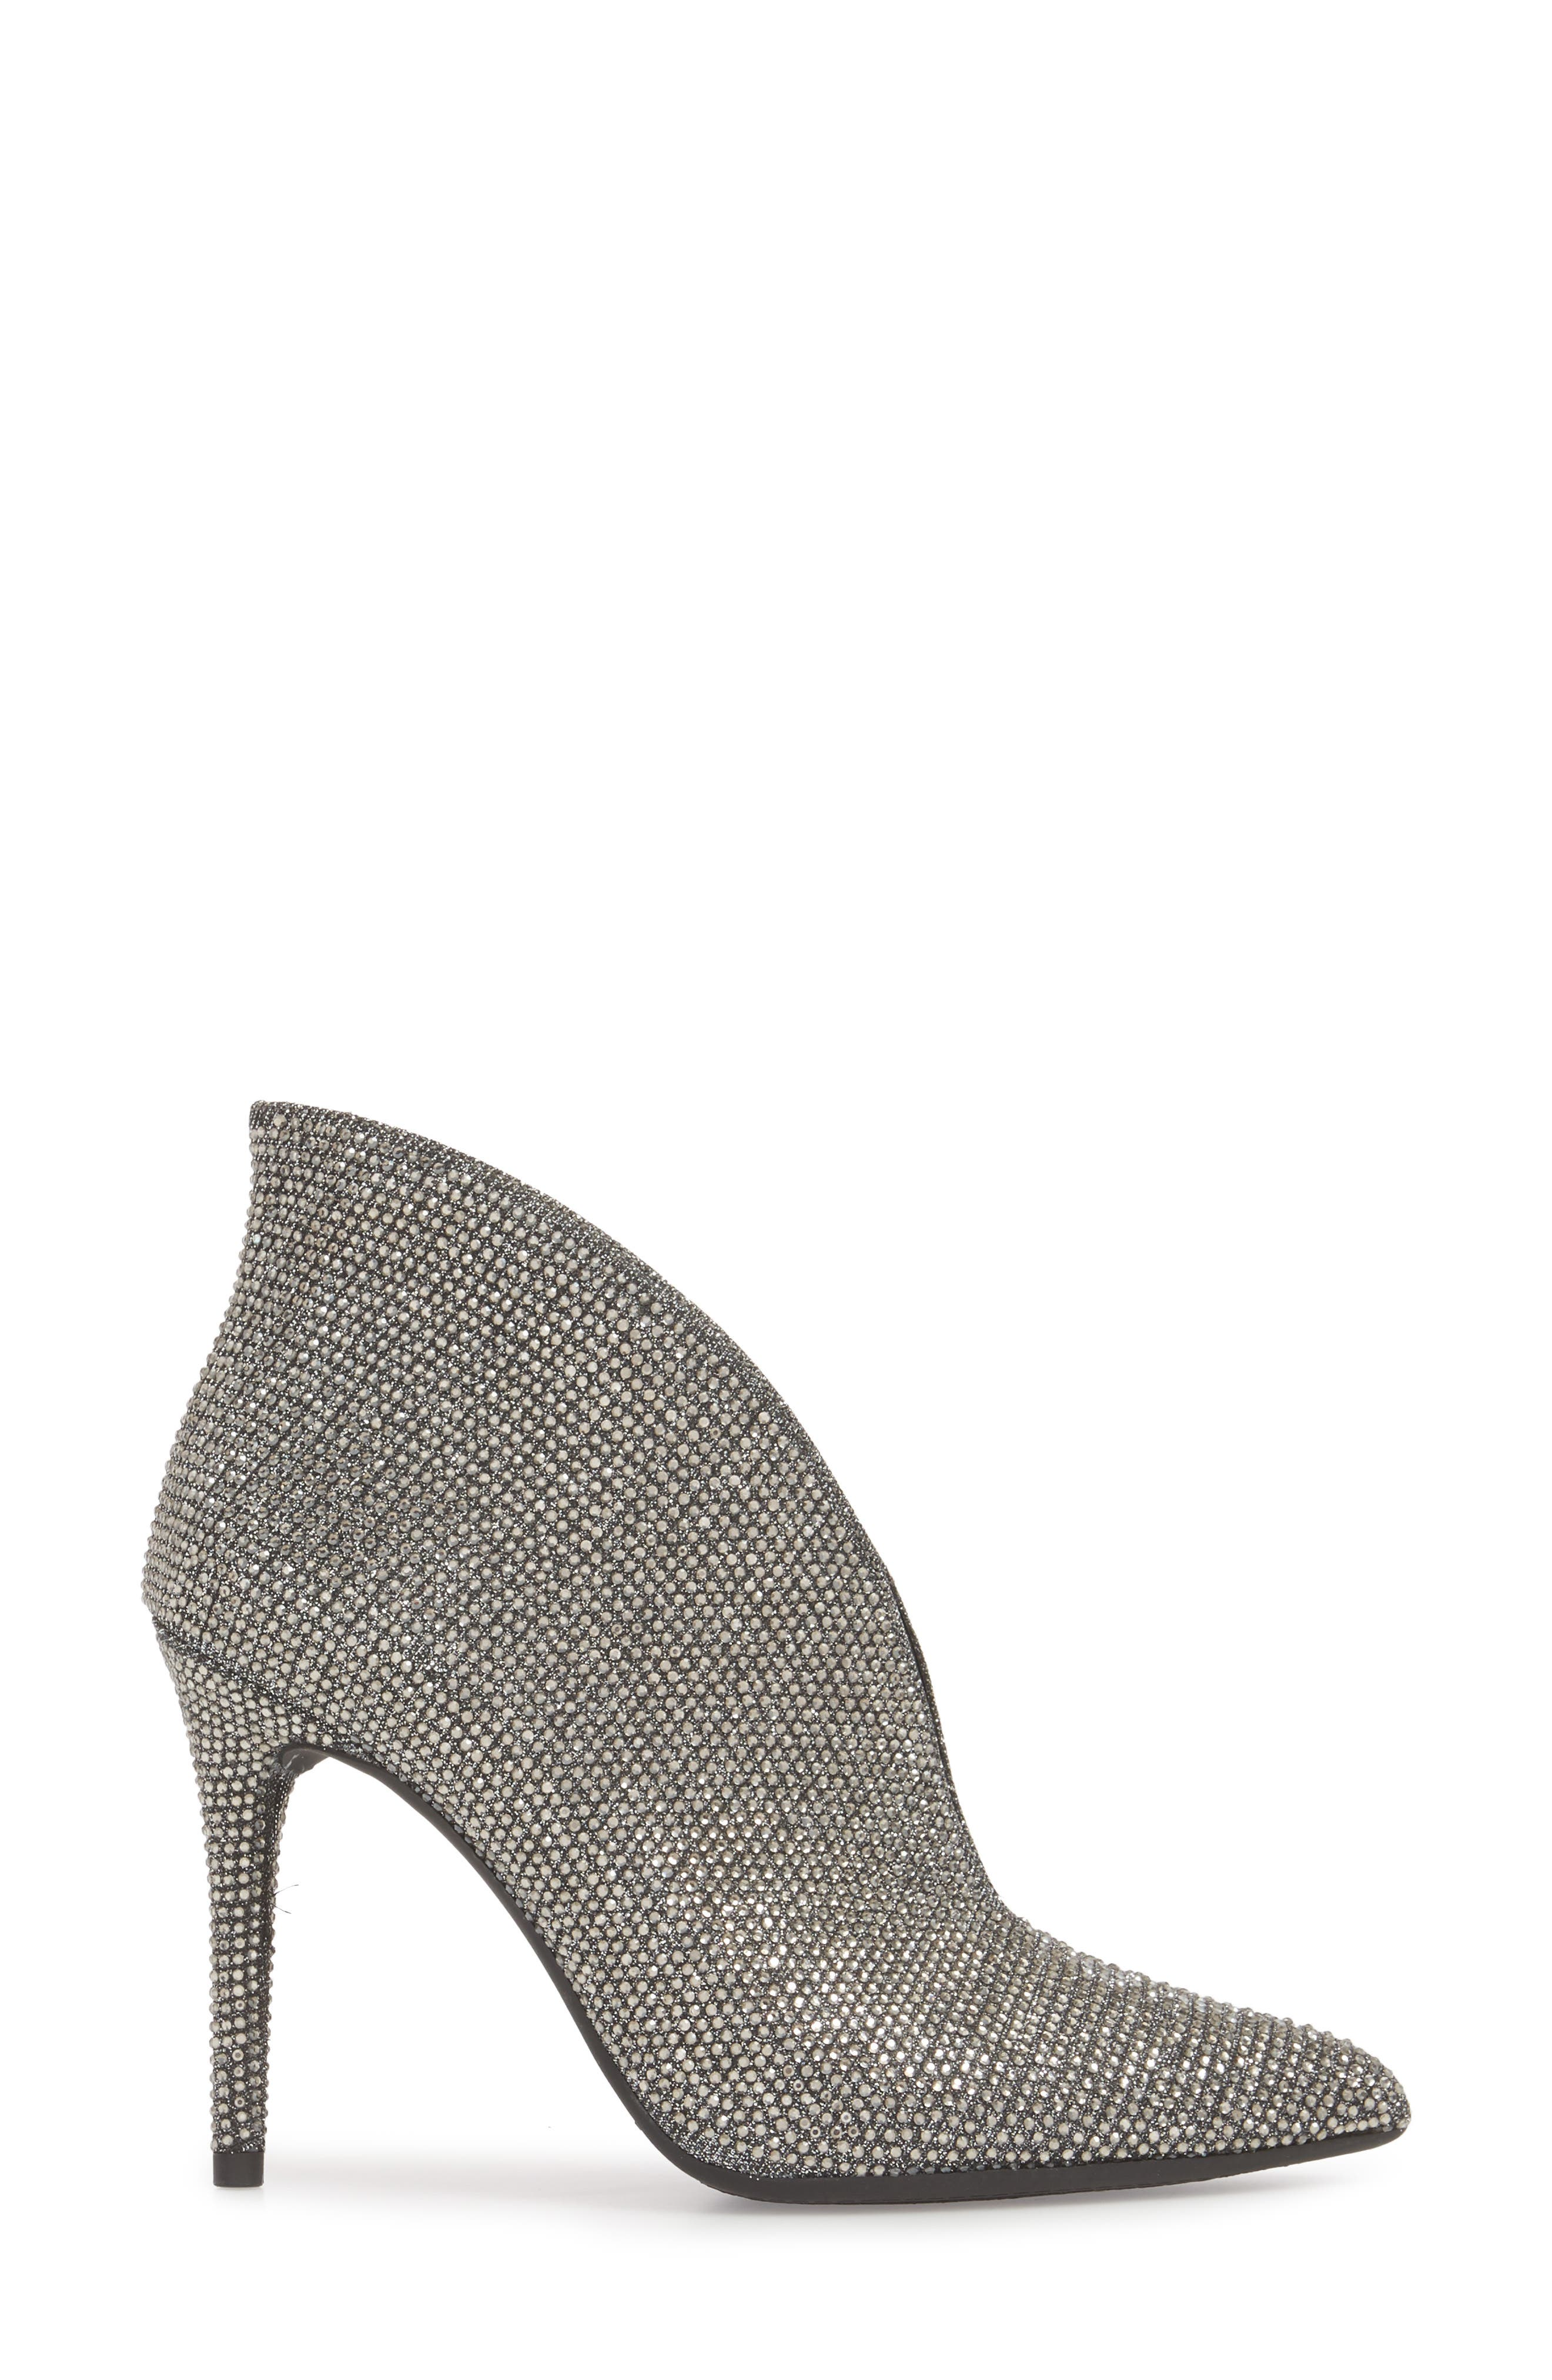 Lasnia Embellished Bootie,                             Alternate thumbnail 3, color,                             PEWTER MULTI